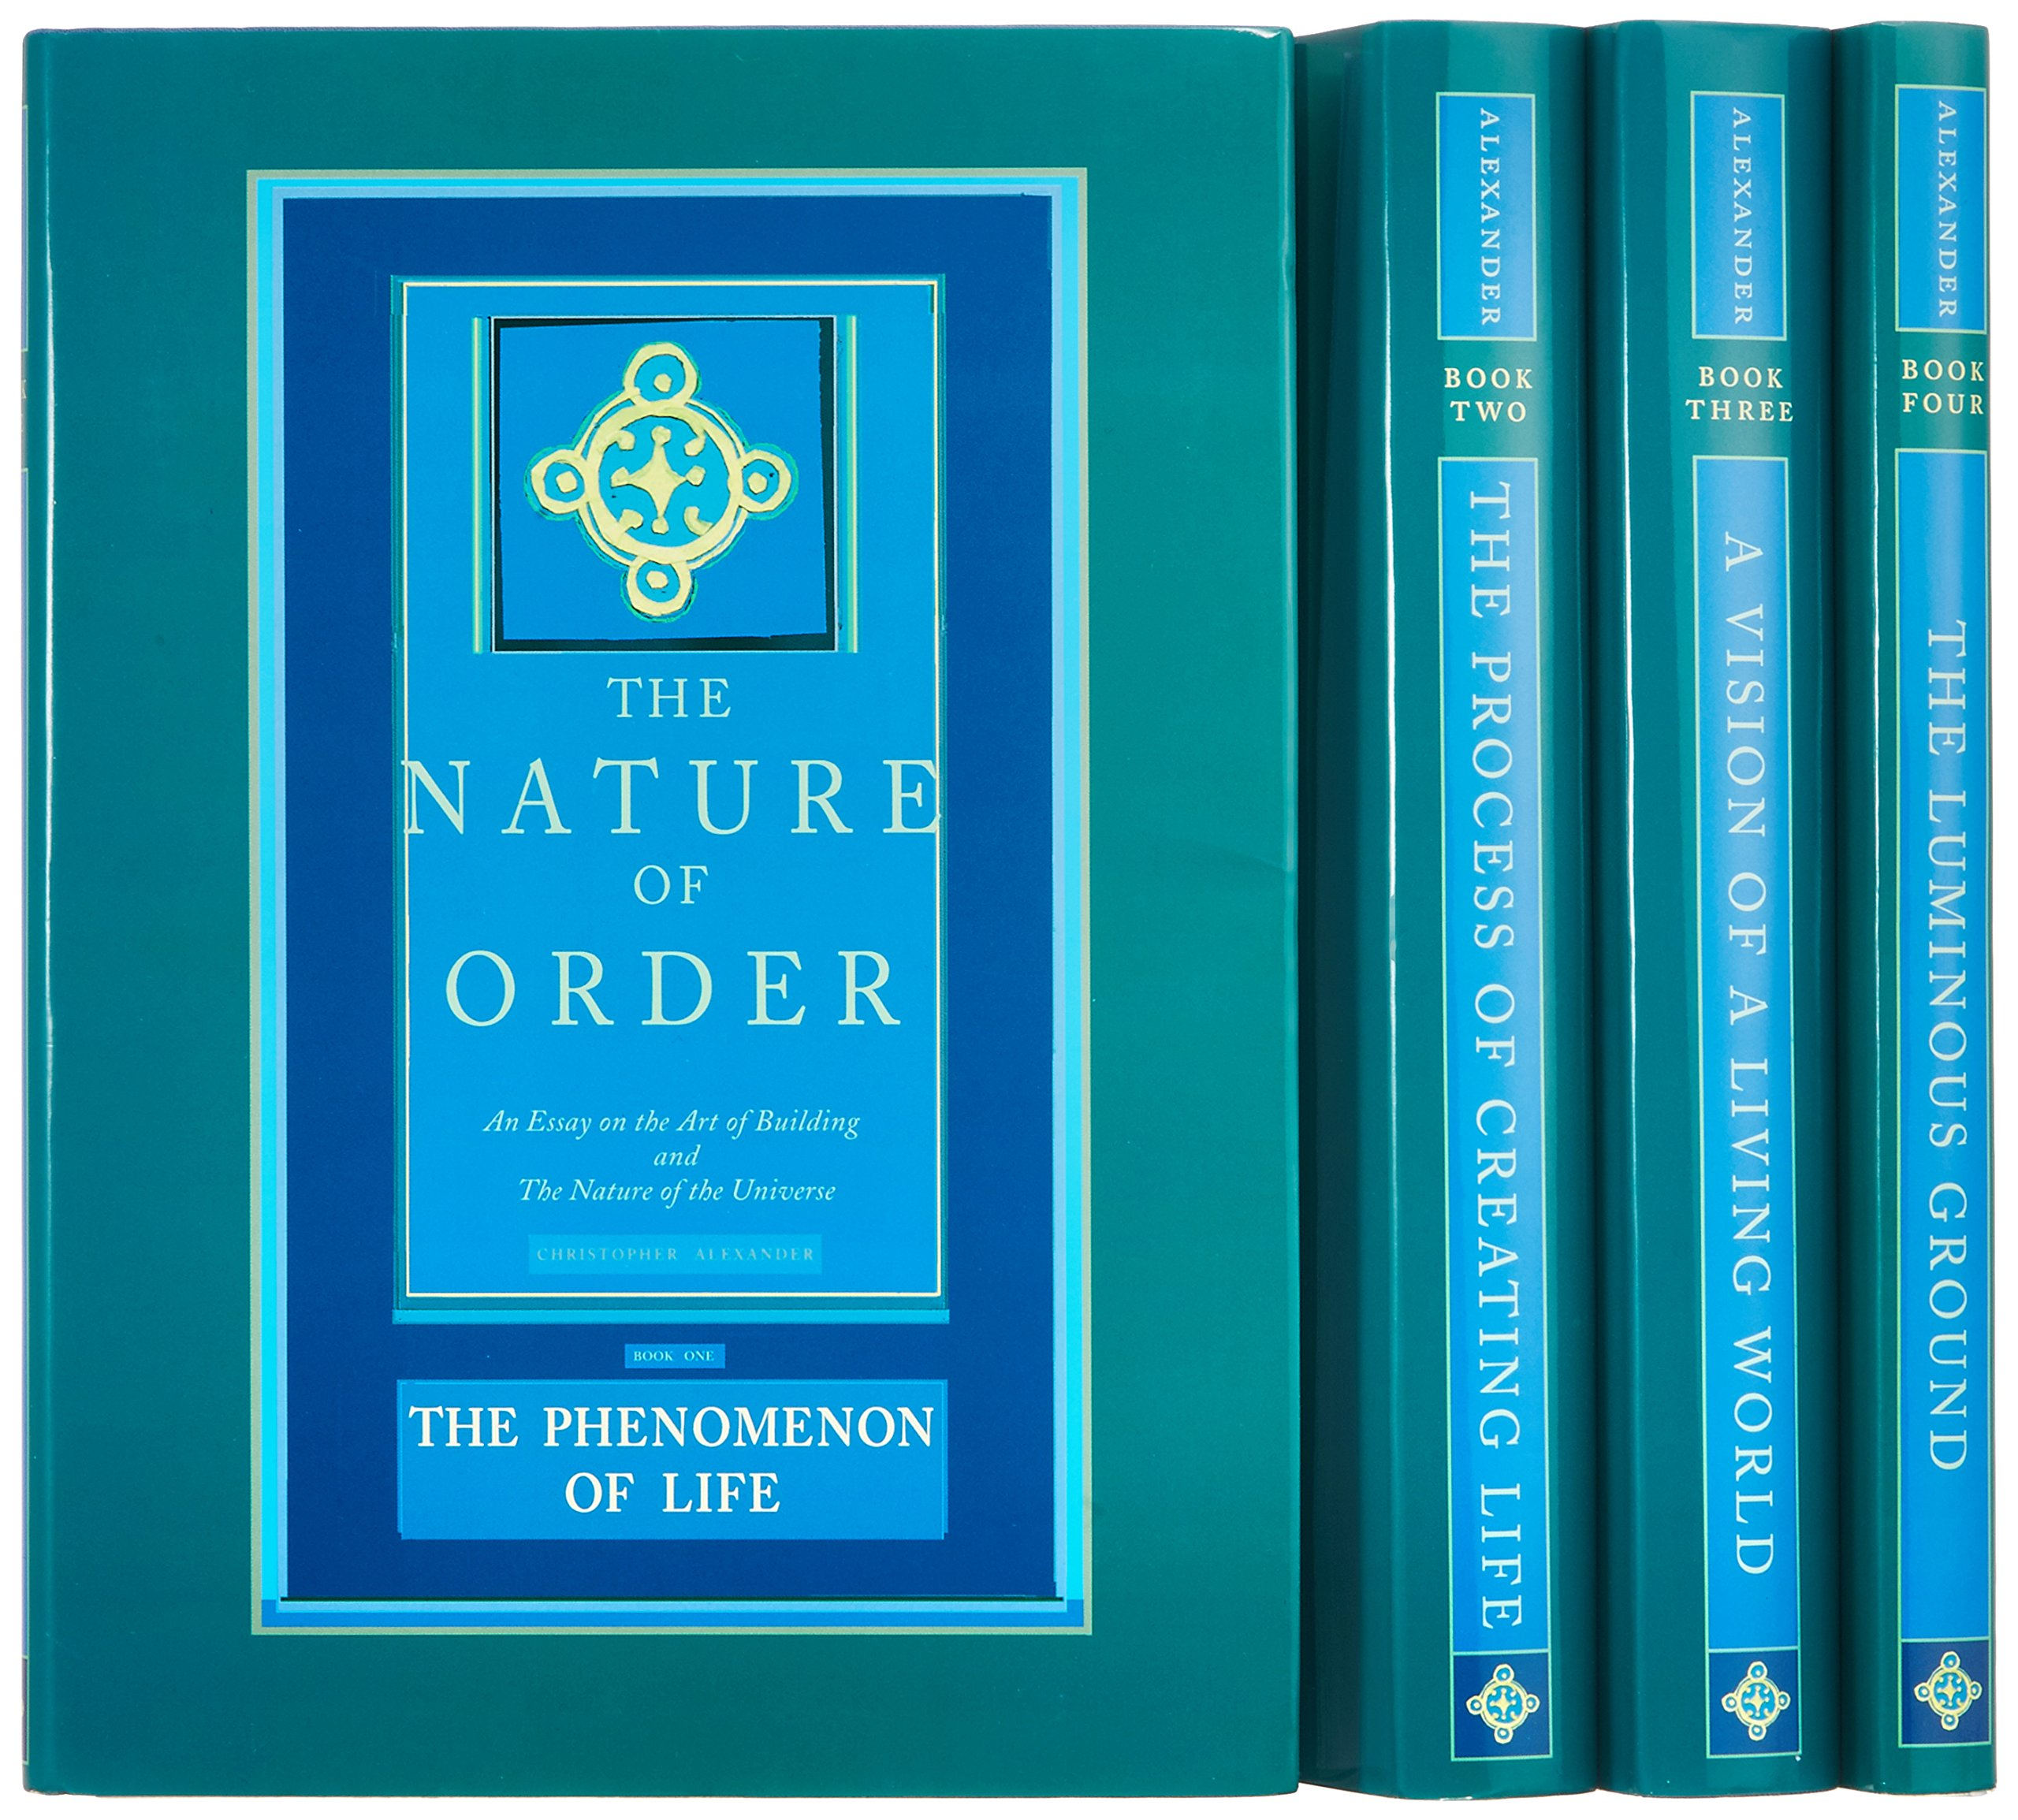 The nature of order